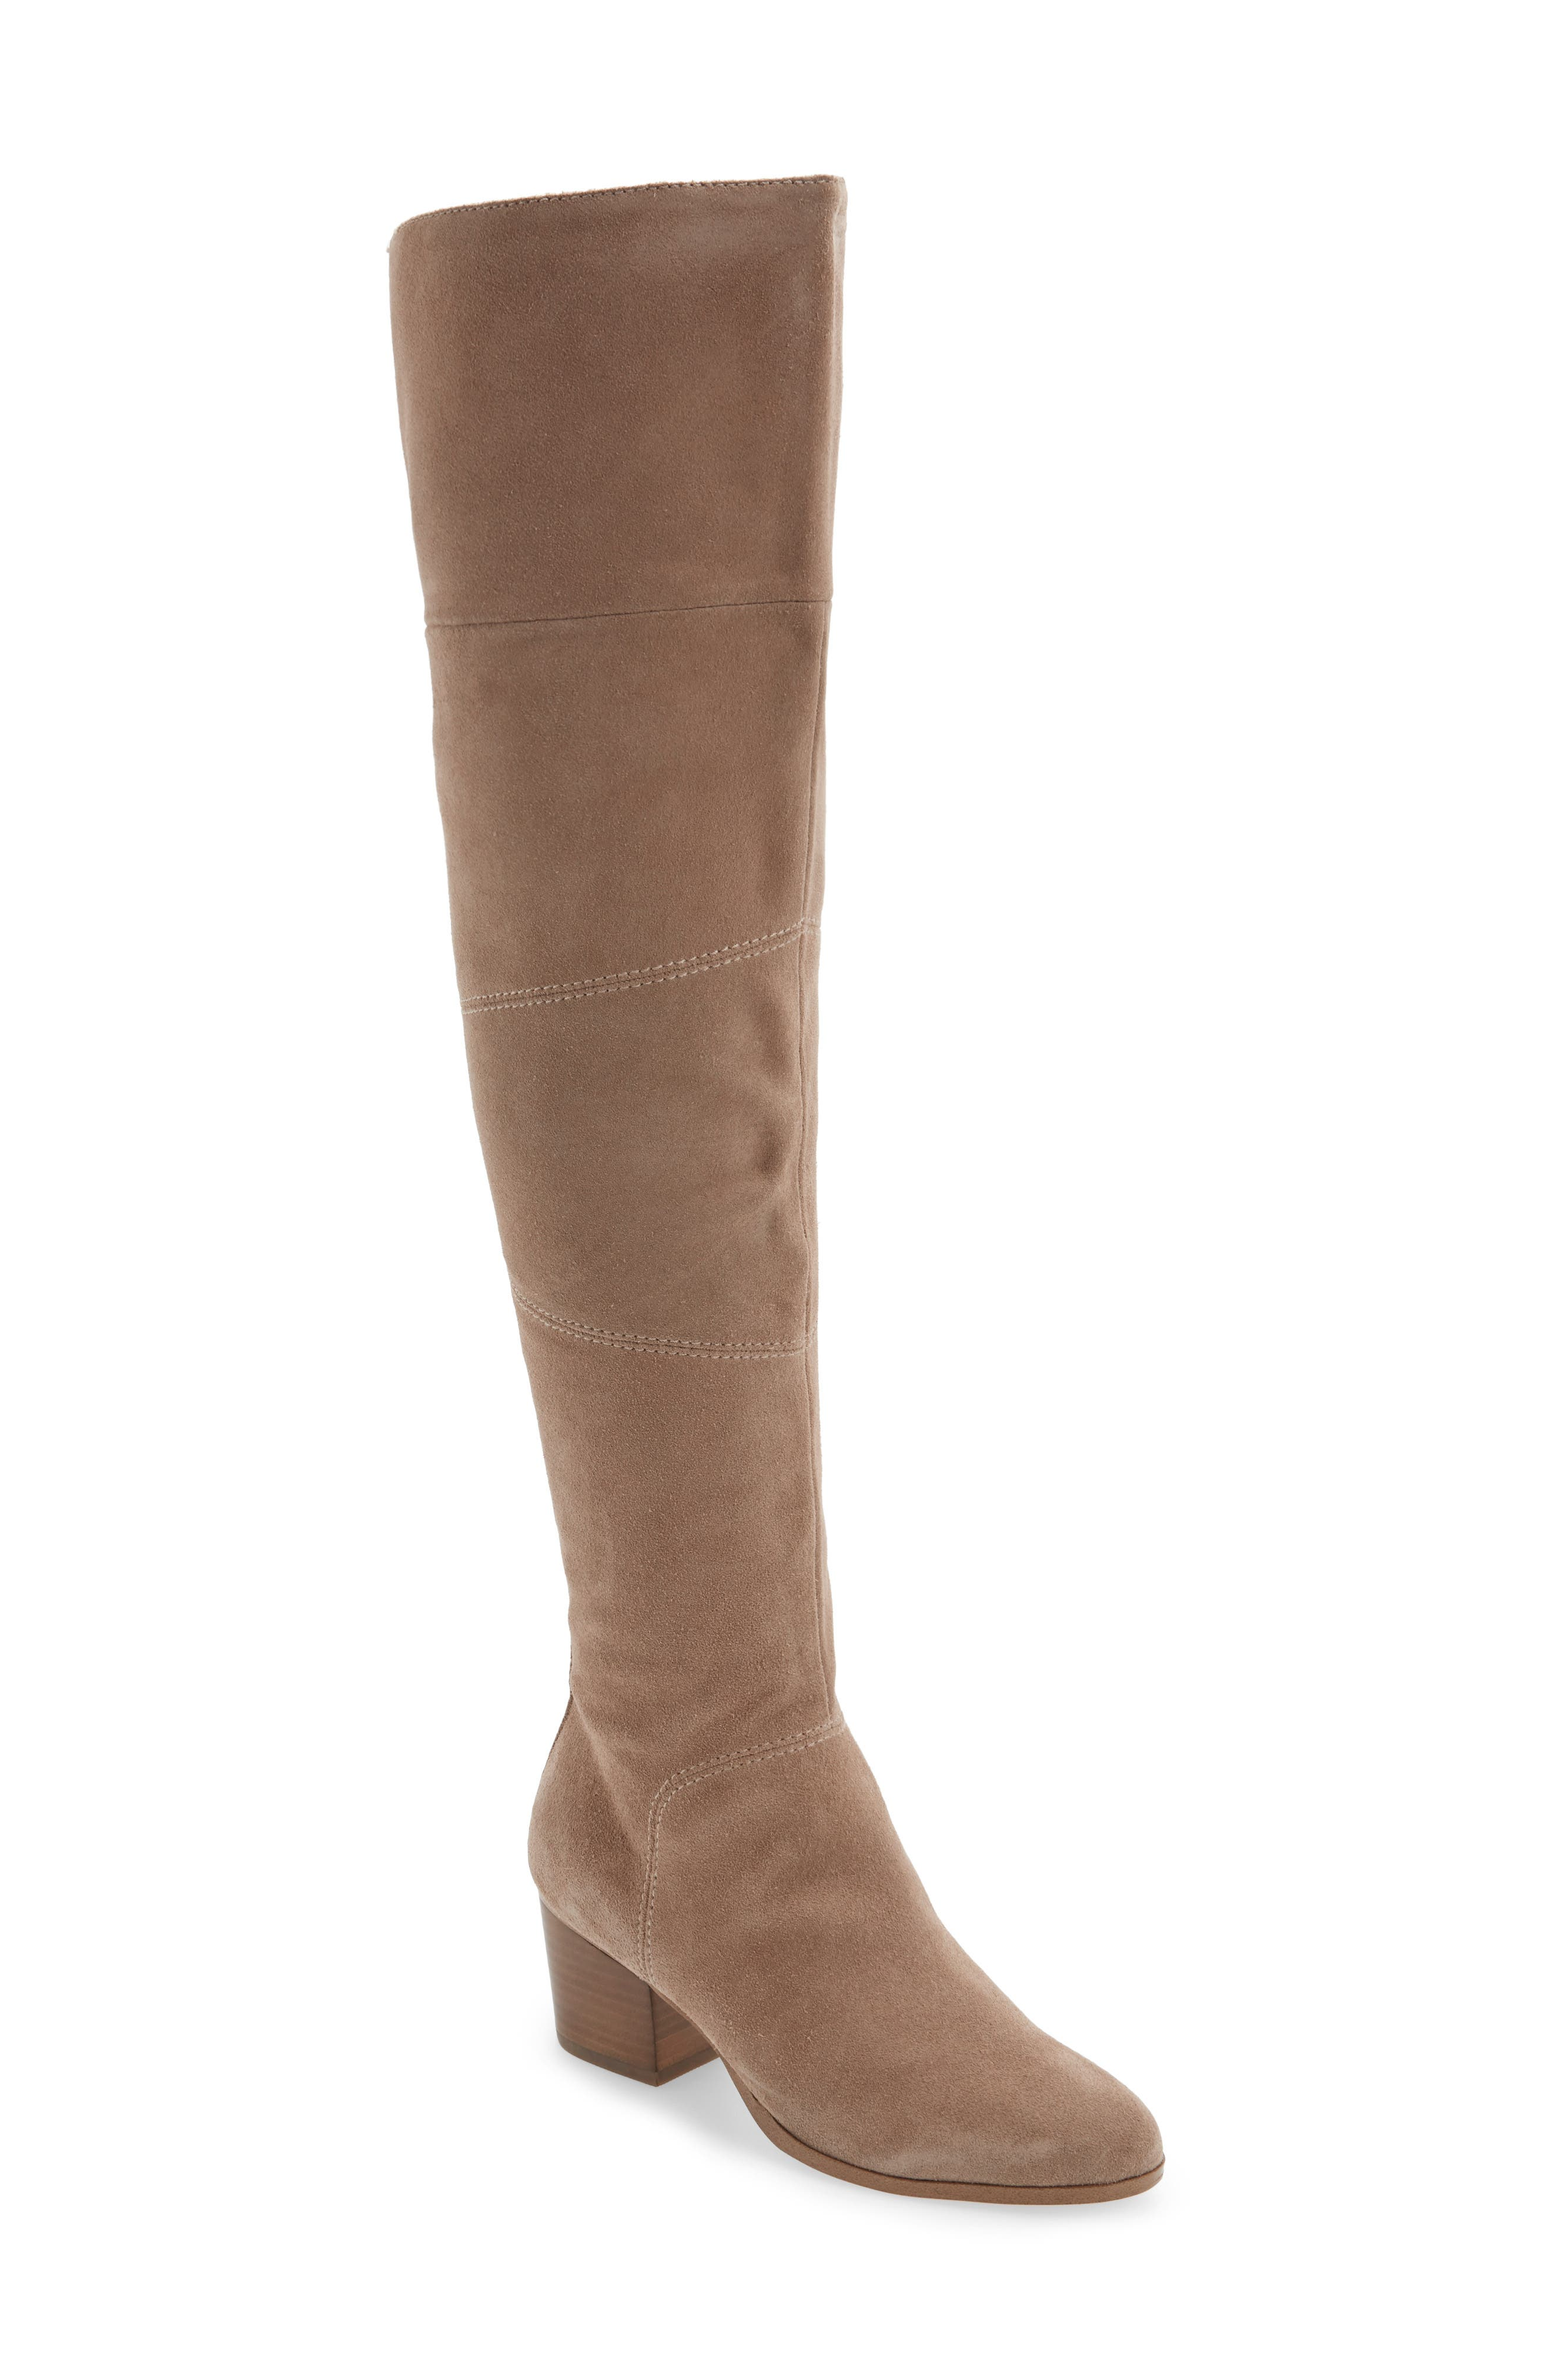 Main Image - Sole Society Melbourne Over the Knee Boot (Women)